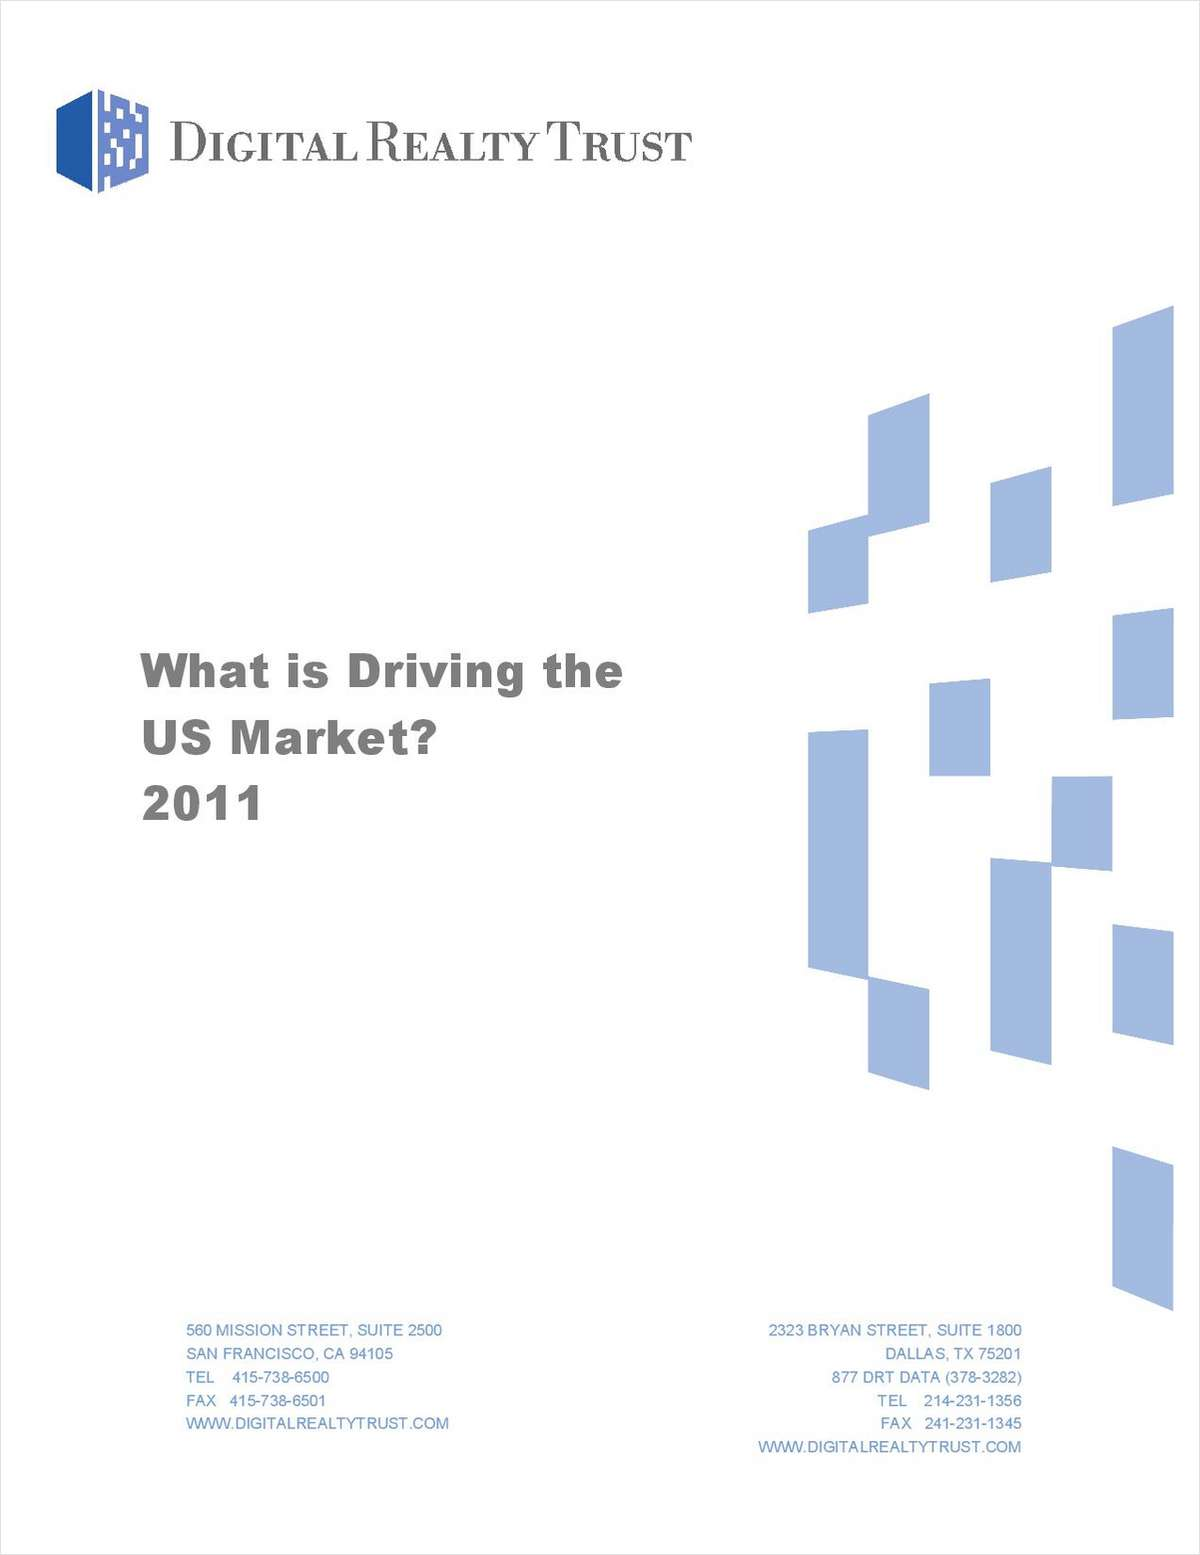 What's Driving the US Data Center Market?